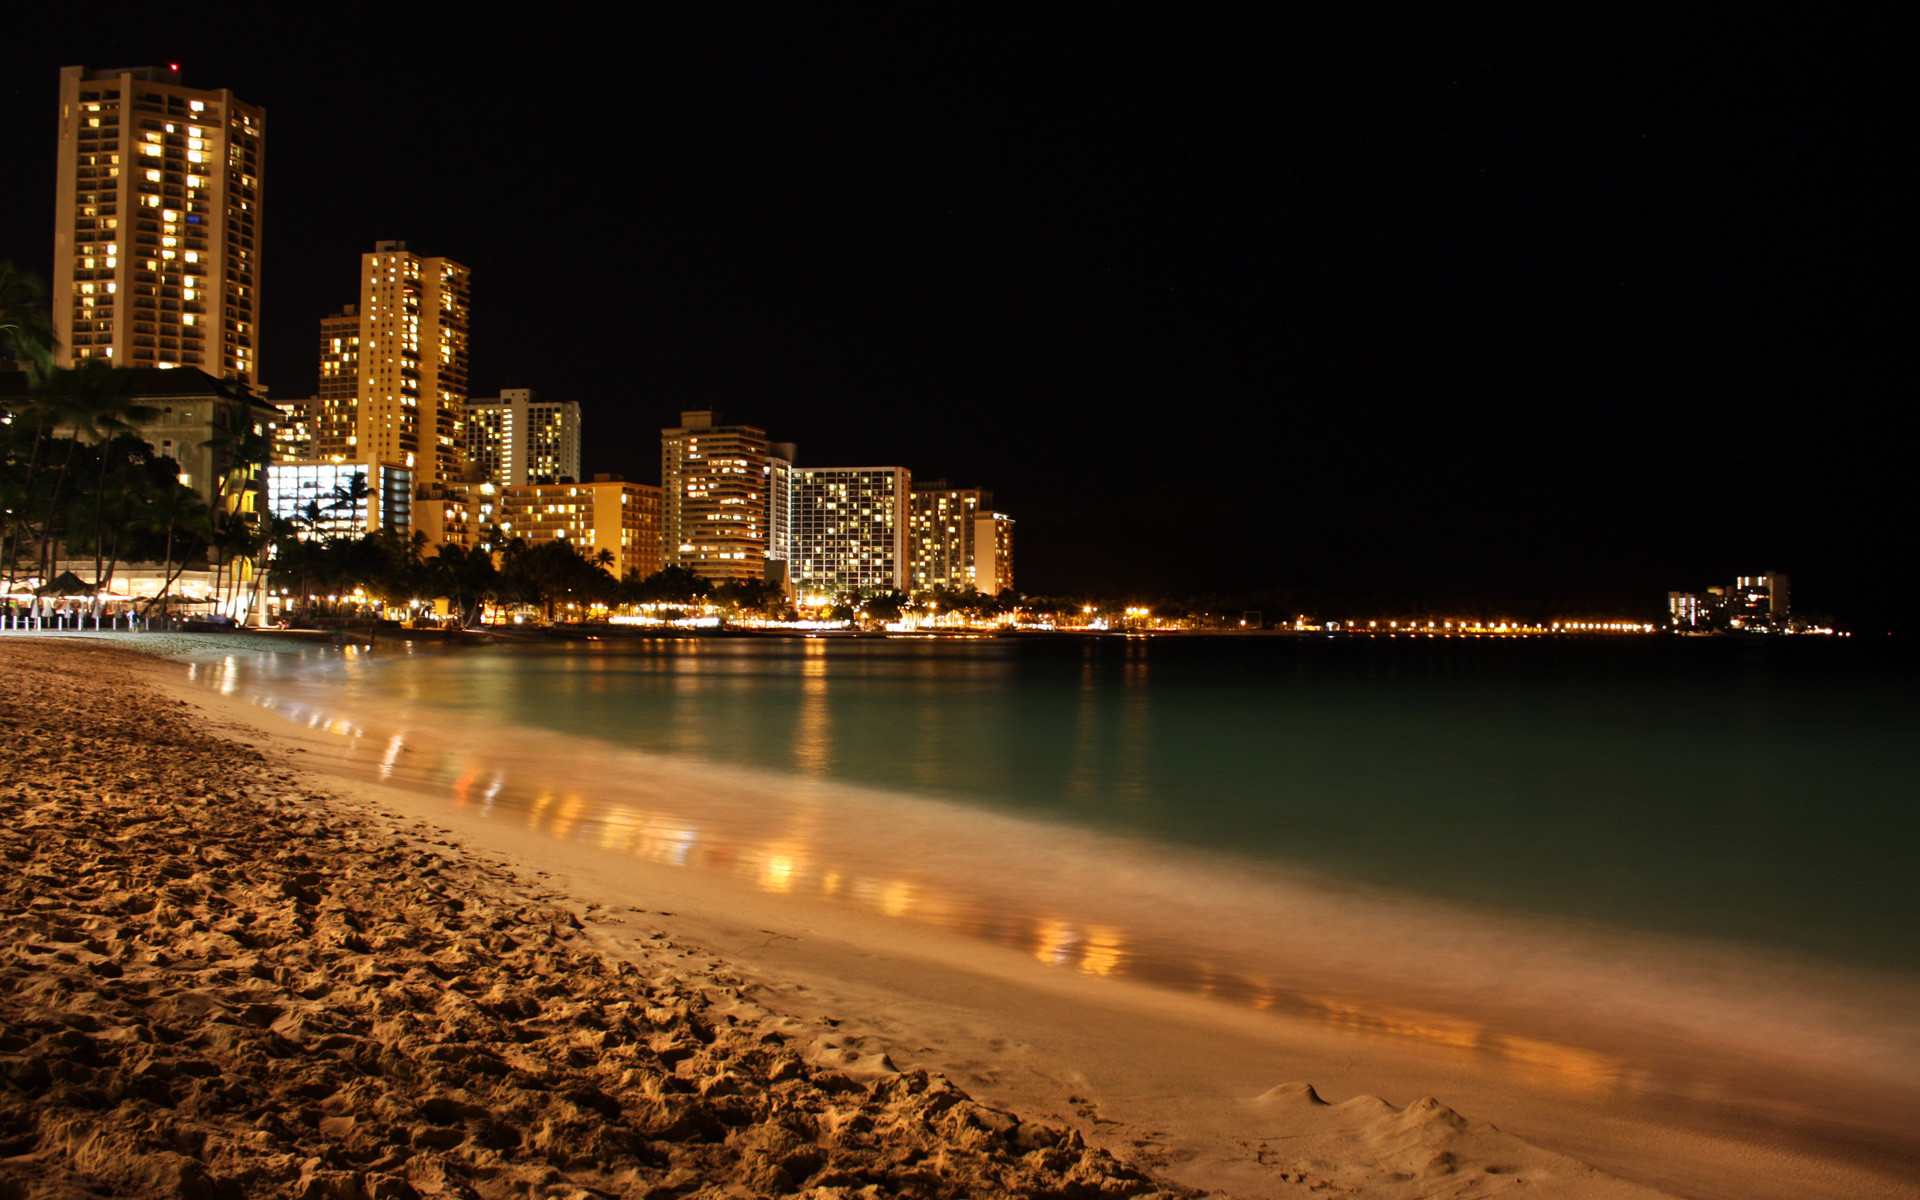 1920x1200 Night Beach Wallpaper Full HD With Wallpapers Wide Resolution  px  672.12 KB